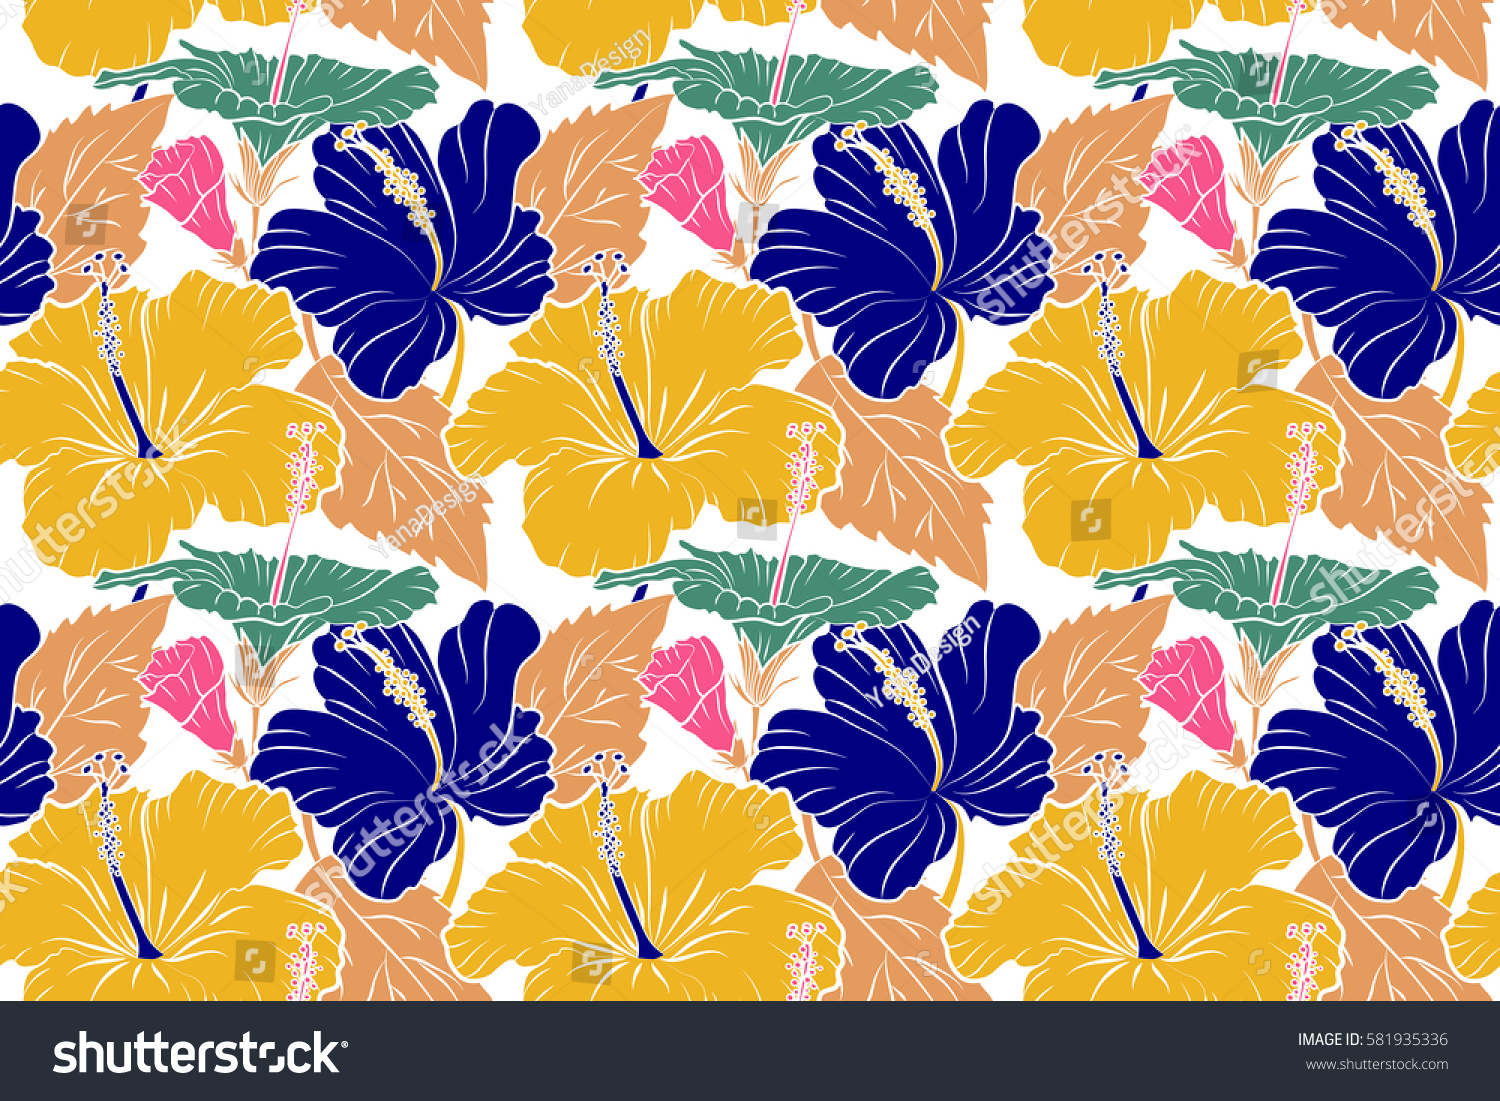 Raster Seamless Pattern Of Tropical Hibiscus Flowers In Yellow Pink